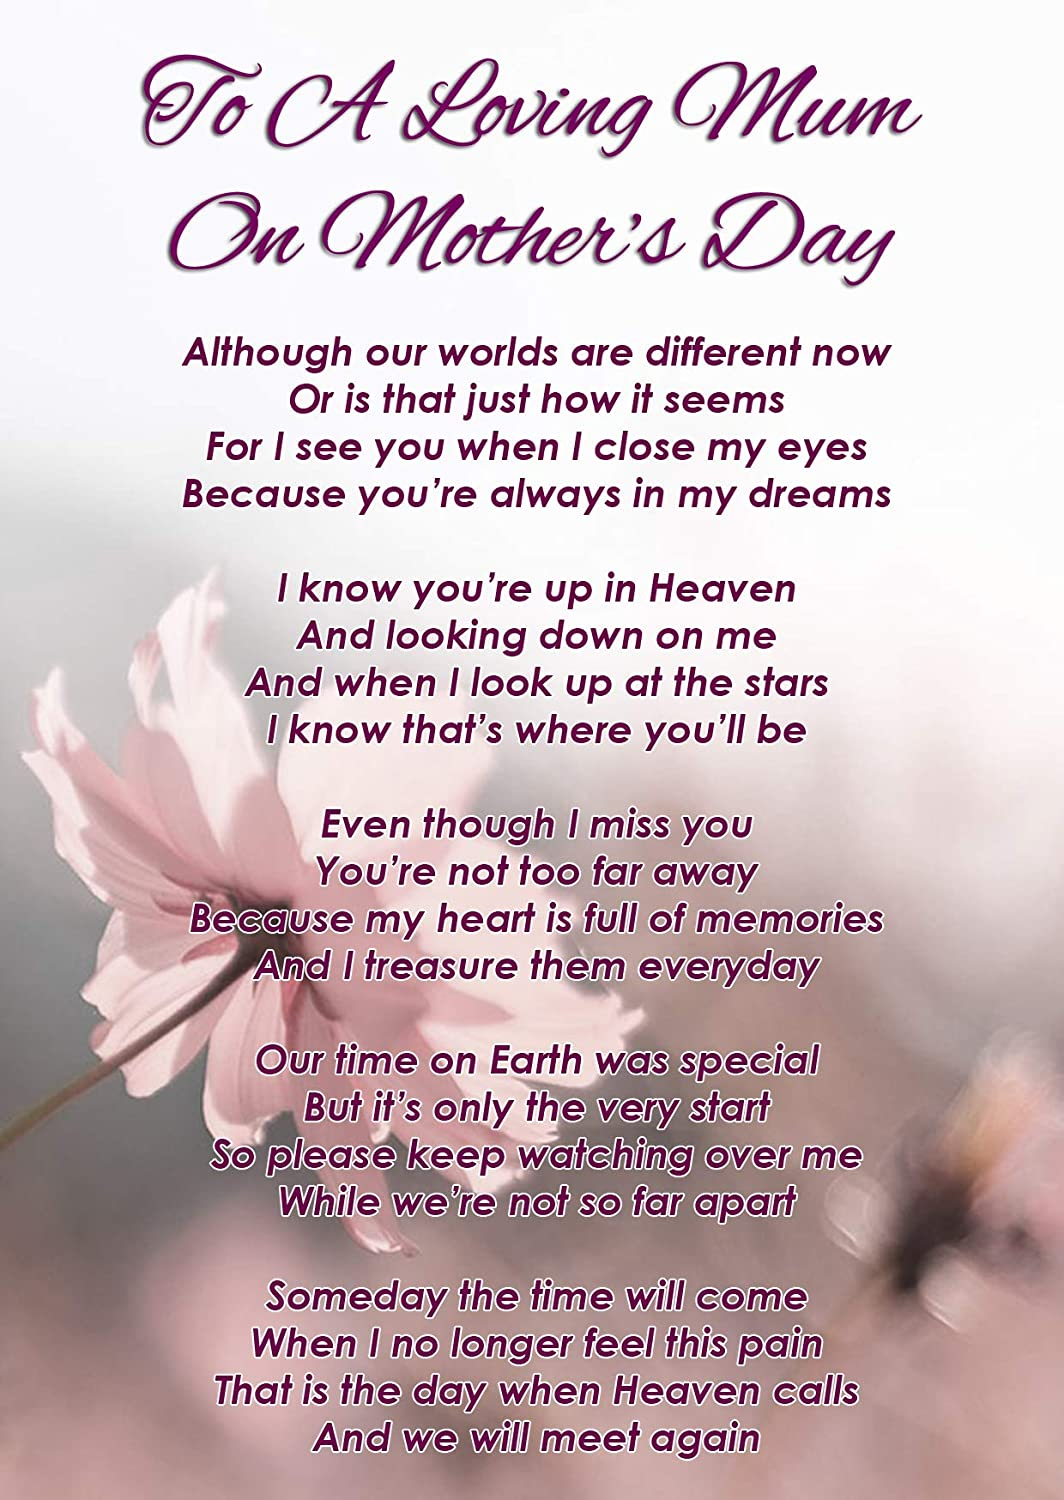 To A Loving Mum On Mother S Day Memorial Graveside Funeral Poem Keepsake Card Includes Free Ground Stake F348 Amazon Co Uk Office Products Read our selections of poems for mom. to a loving mum on mother s day memorial graveside funeral poem keepsake card includes free ground stake f348